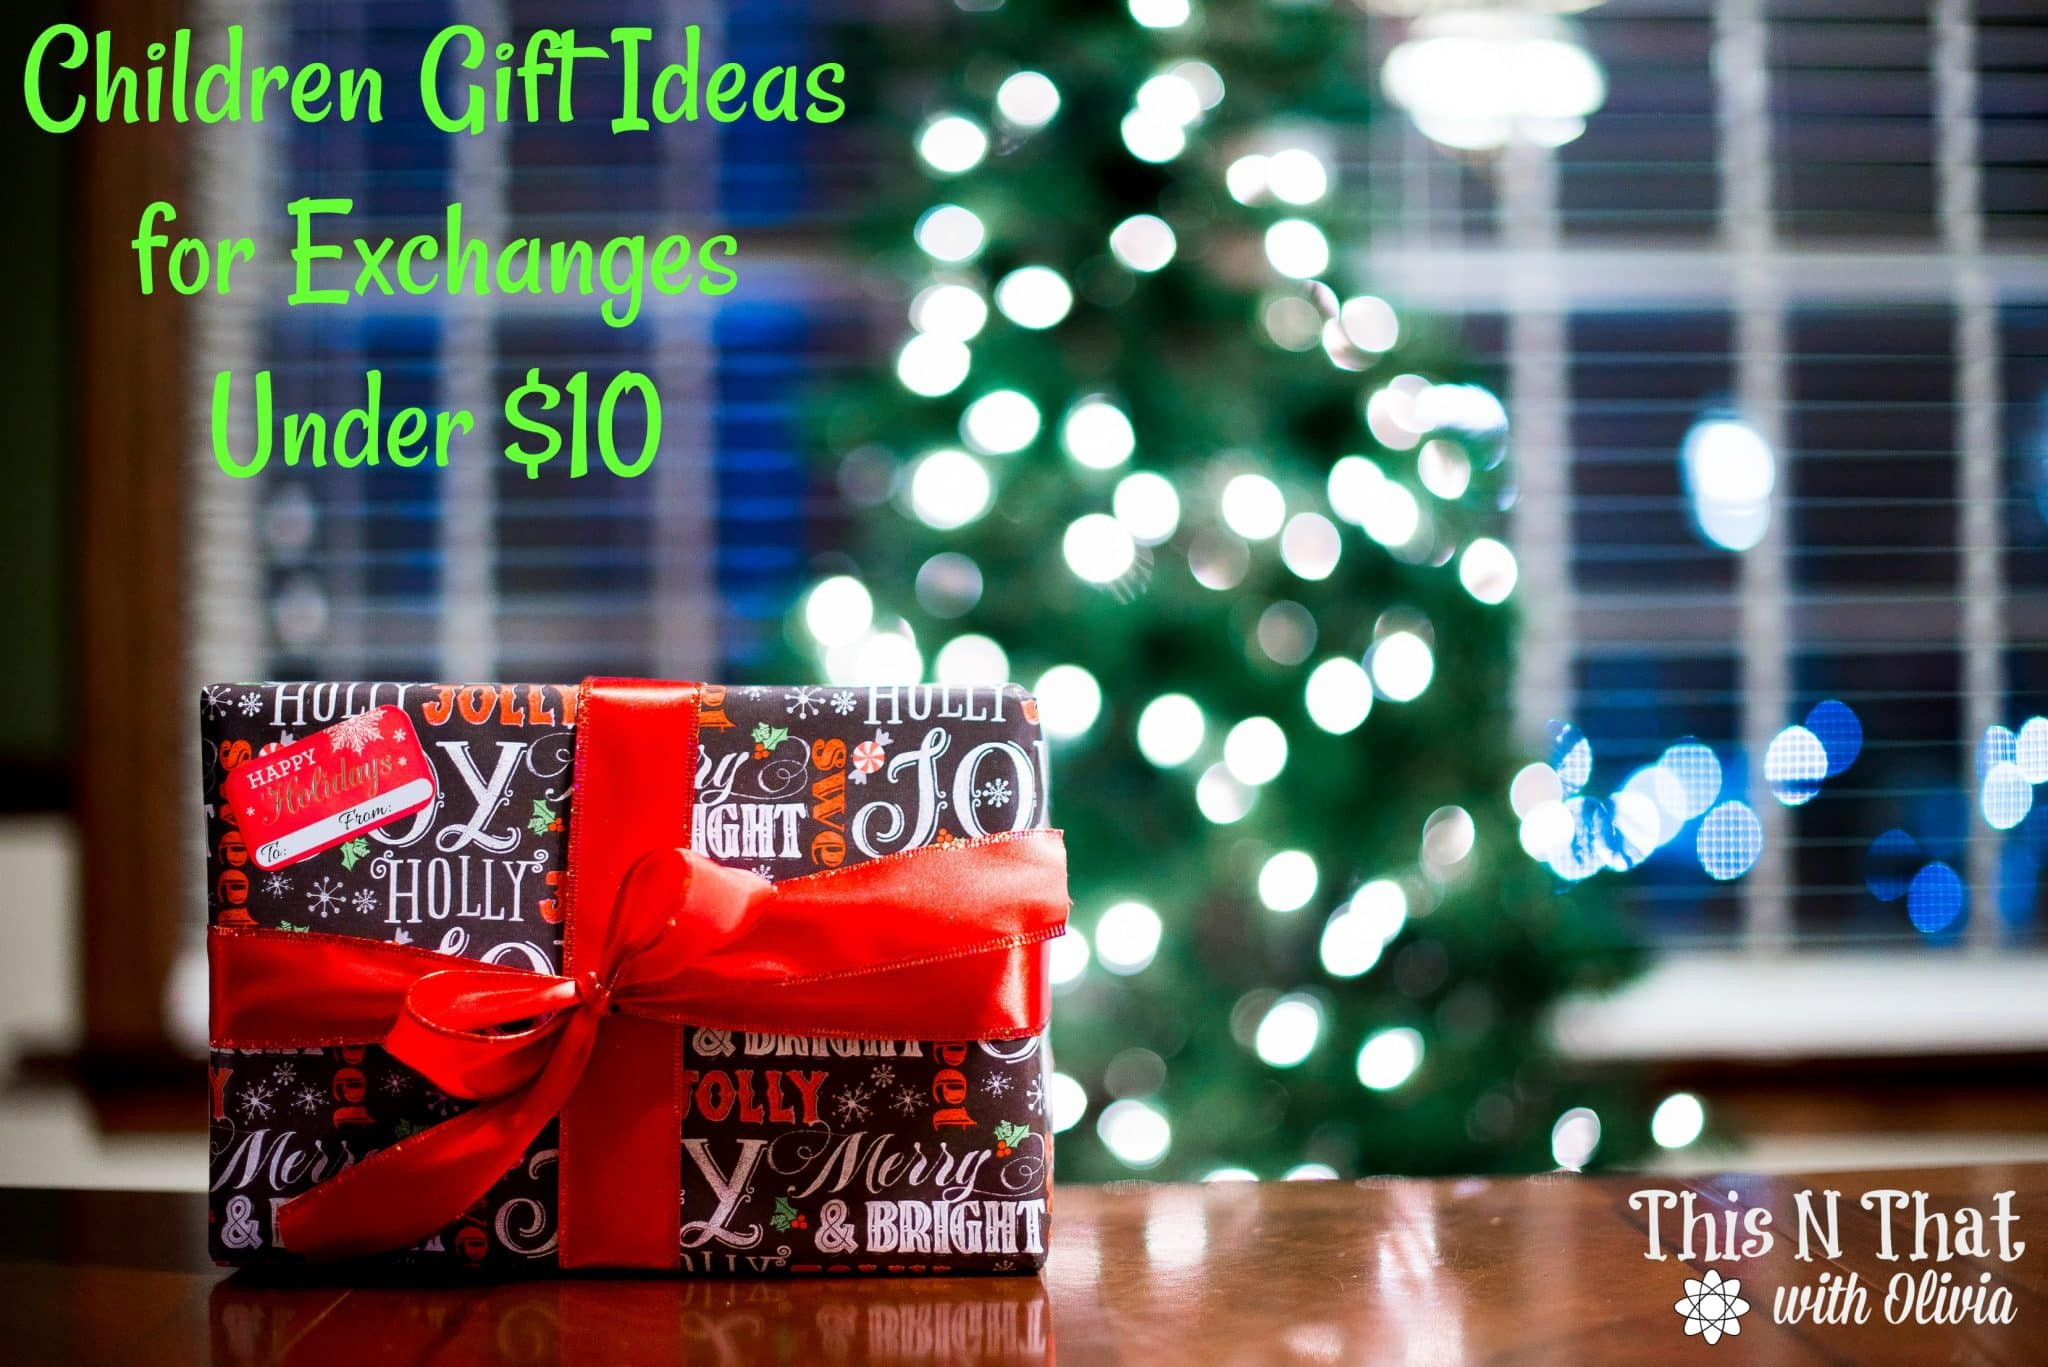 Christmas gifts ideas for kids under $10